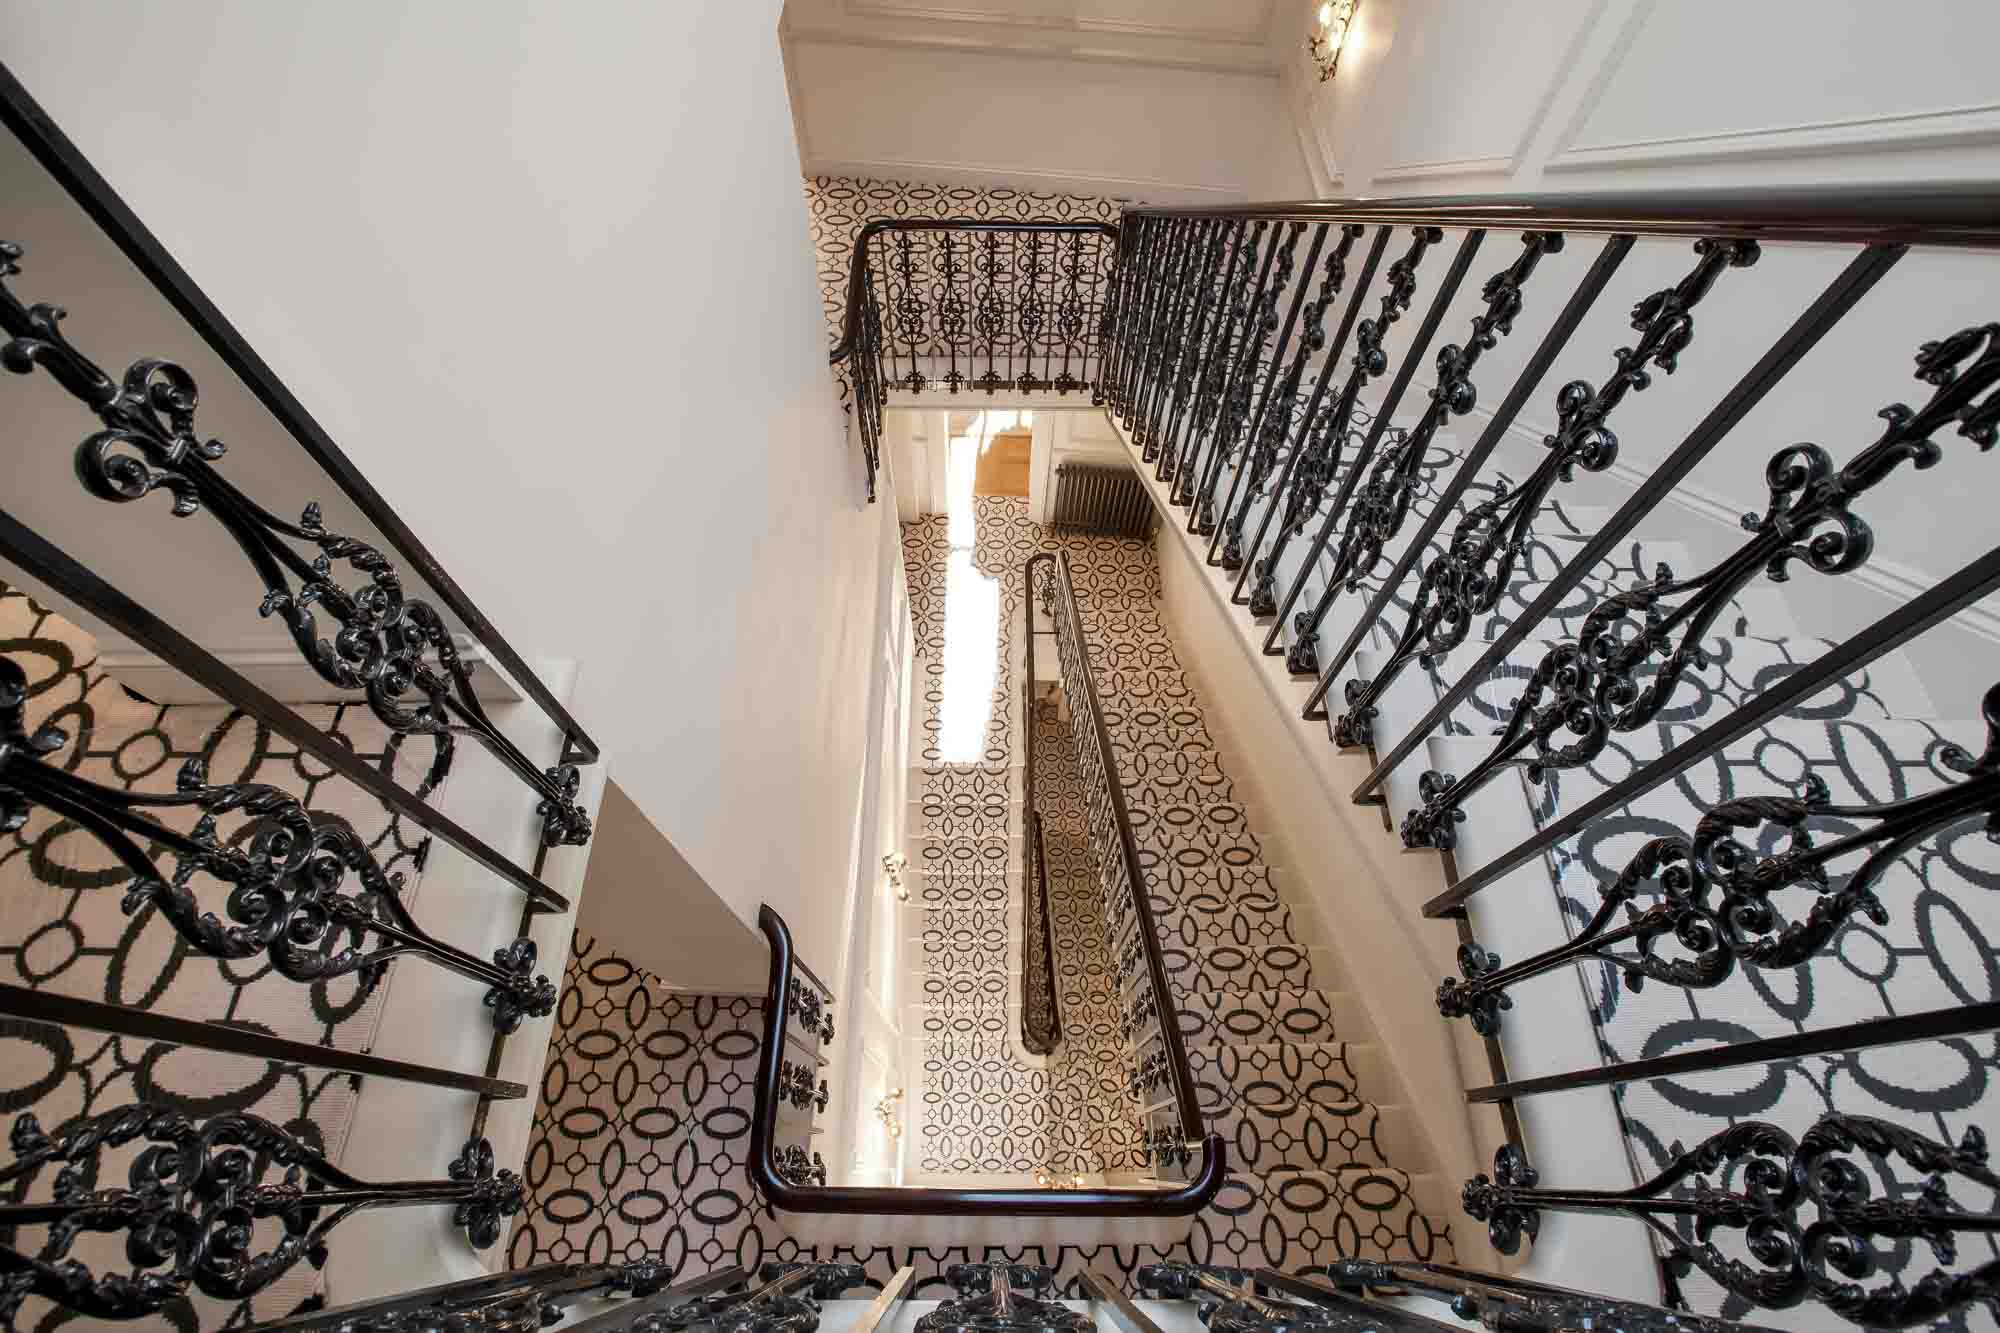 jonathan bond photography, stairwell designed by tessuto interiors, hyde park, london